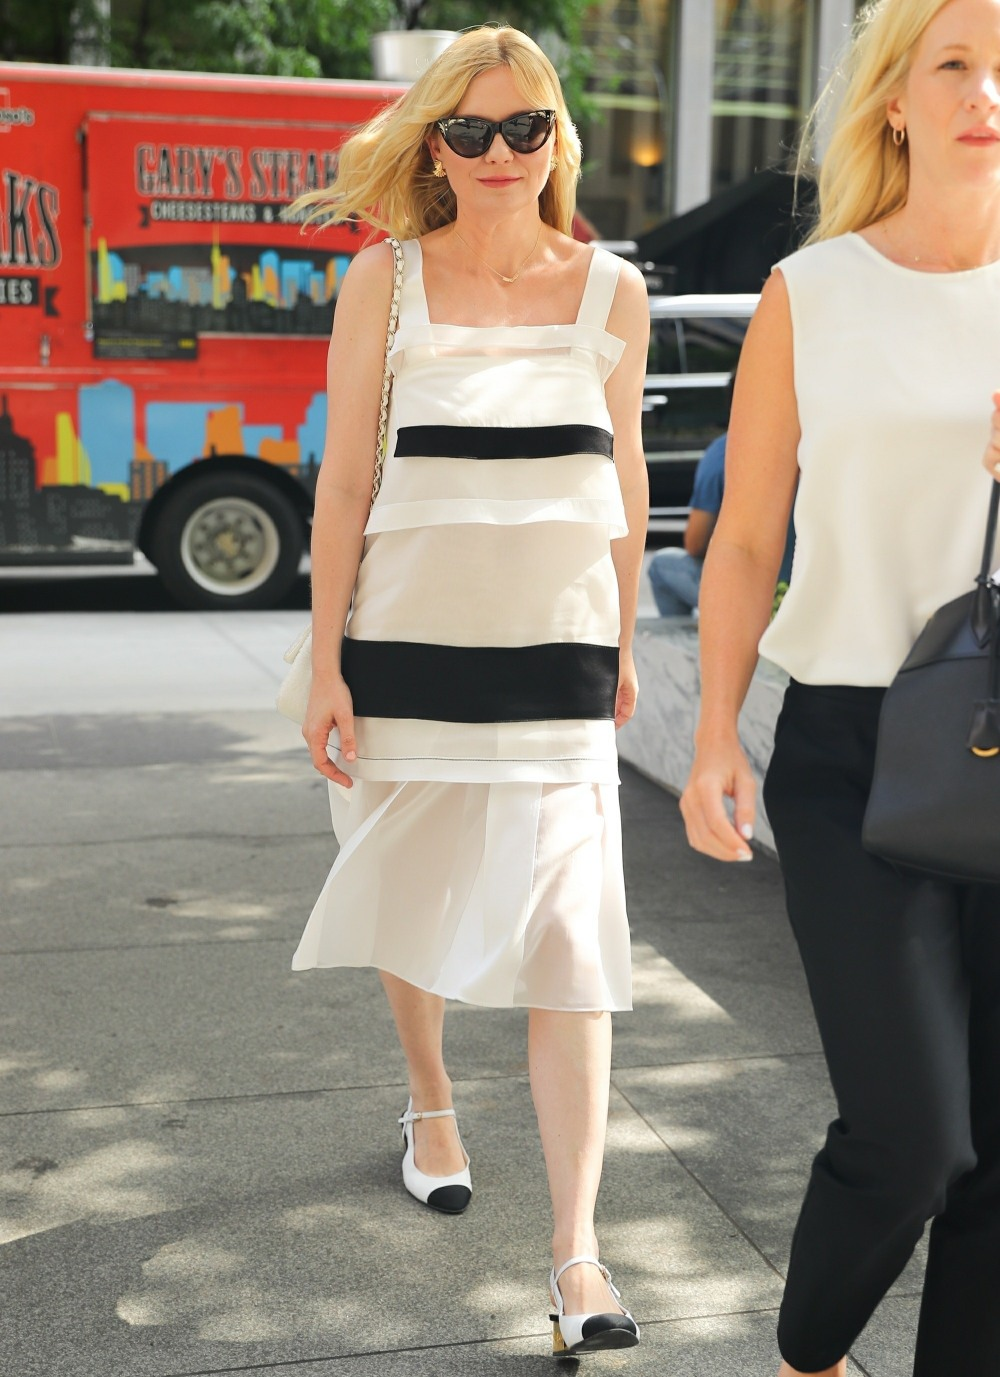 Kirsten Dunst promotes 'On Becoming a God in Central Florida' at SiriusXM